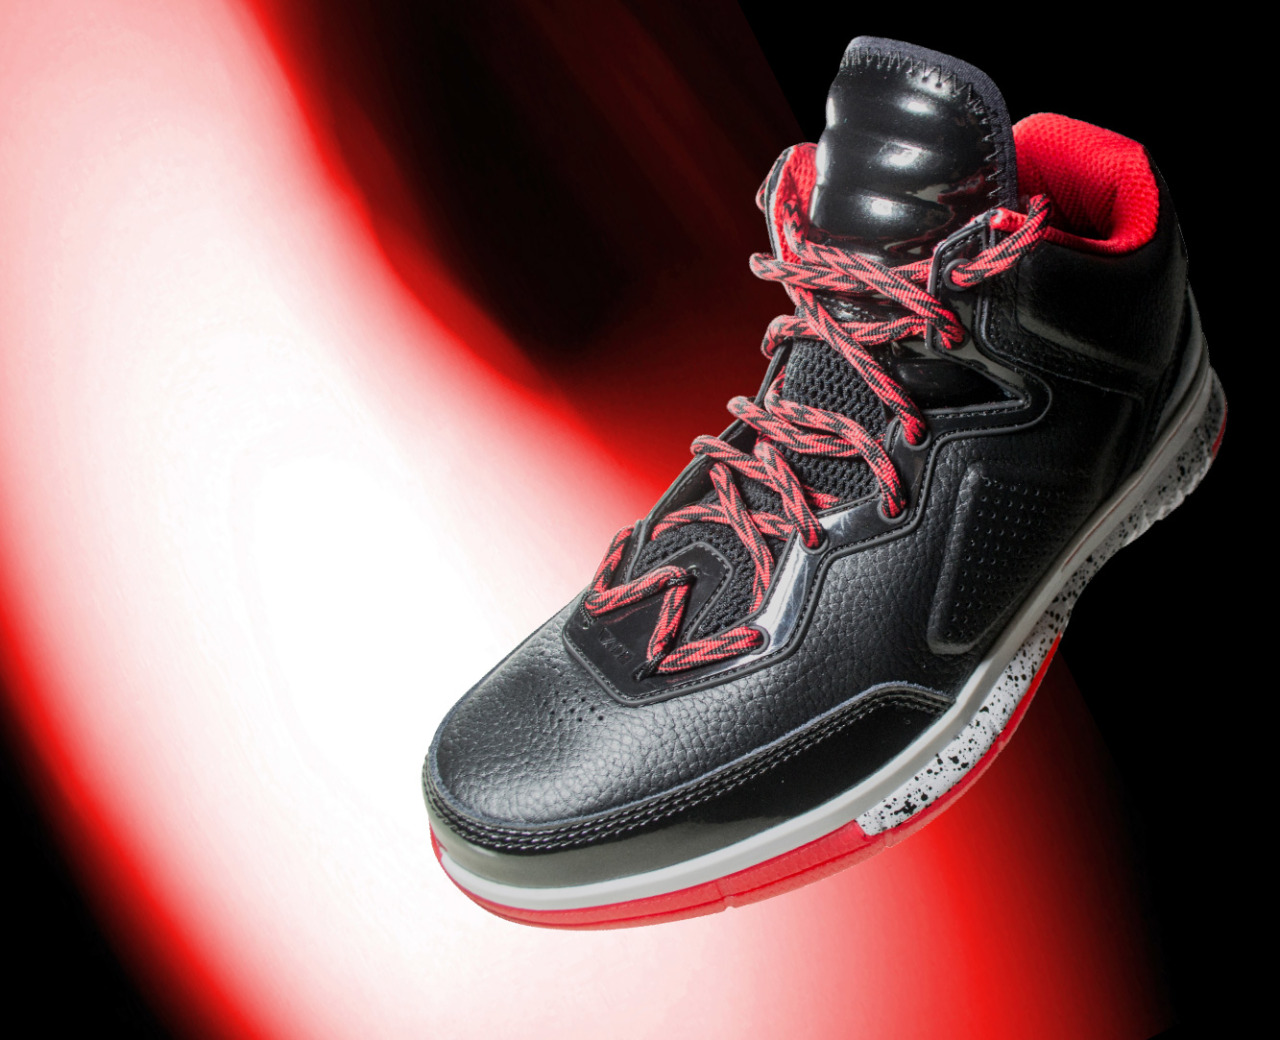 Check out part 1 of my breakdown of the Li-Ning Way of Wade!